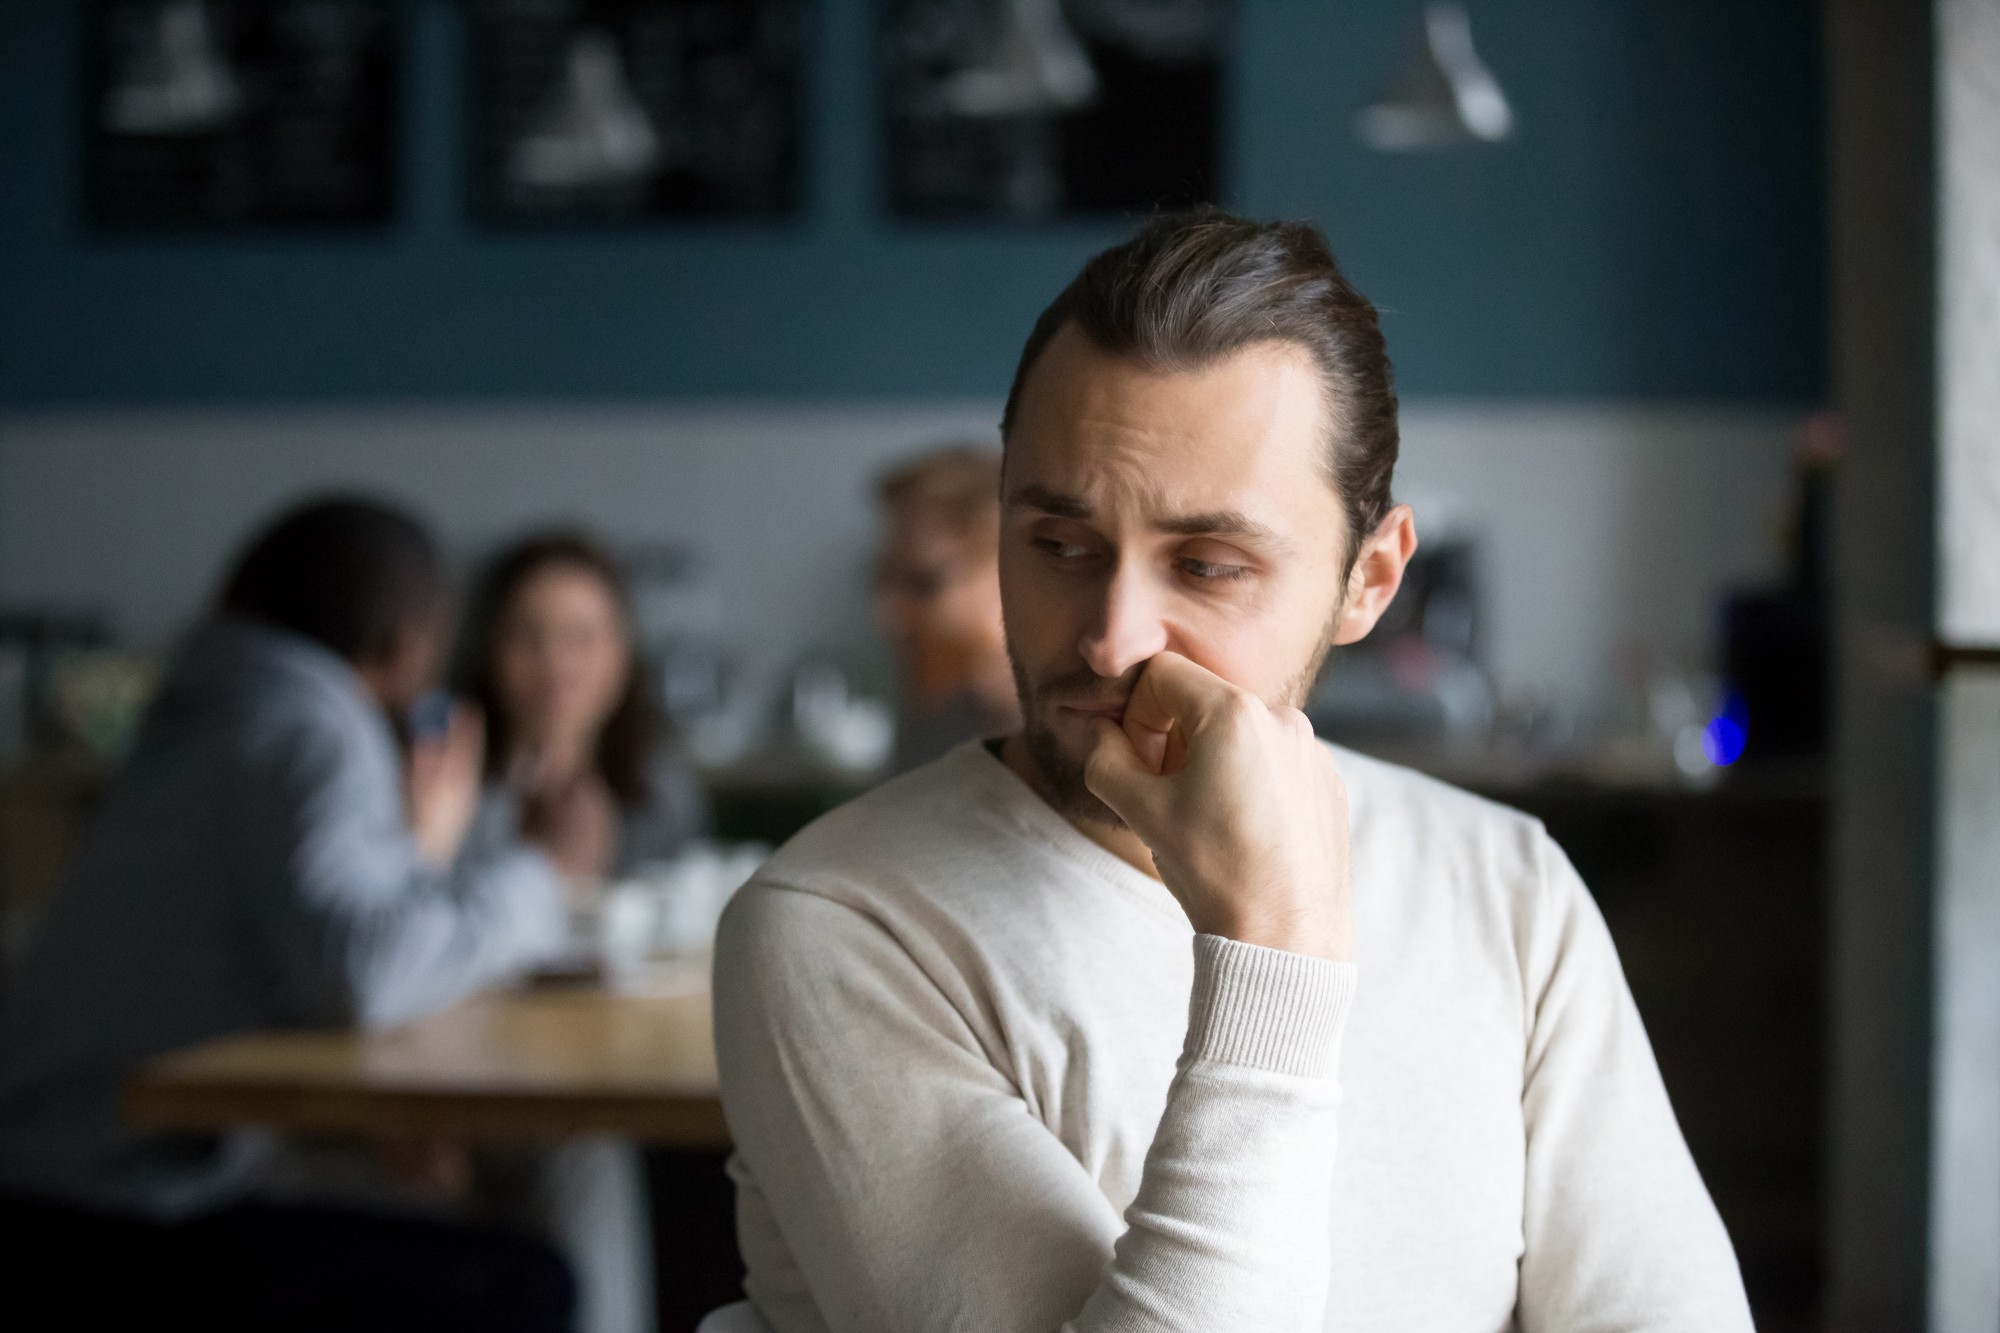 A white man sits alone in a cafe. He faces the camera, but his attention is on a group behind him he wants to be a part of.